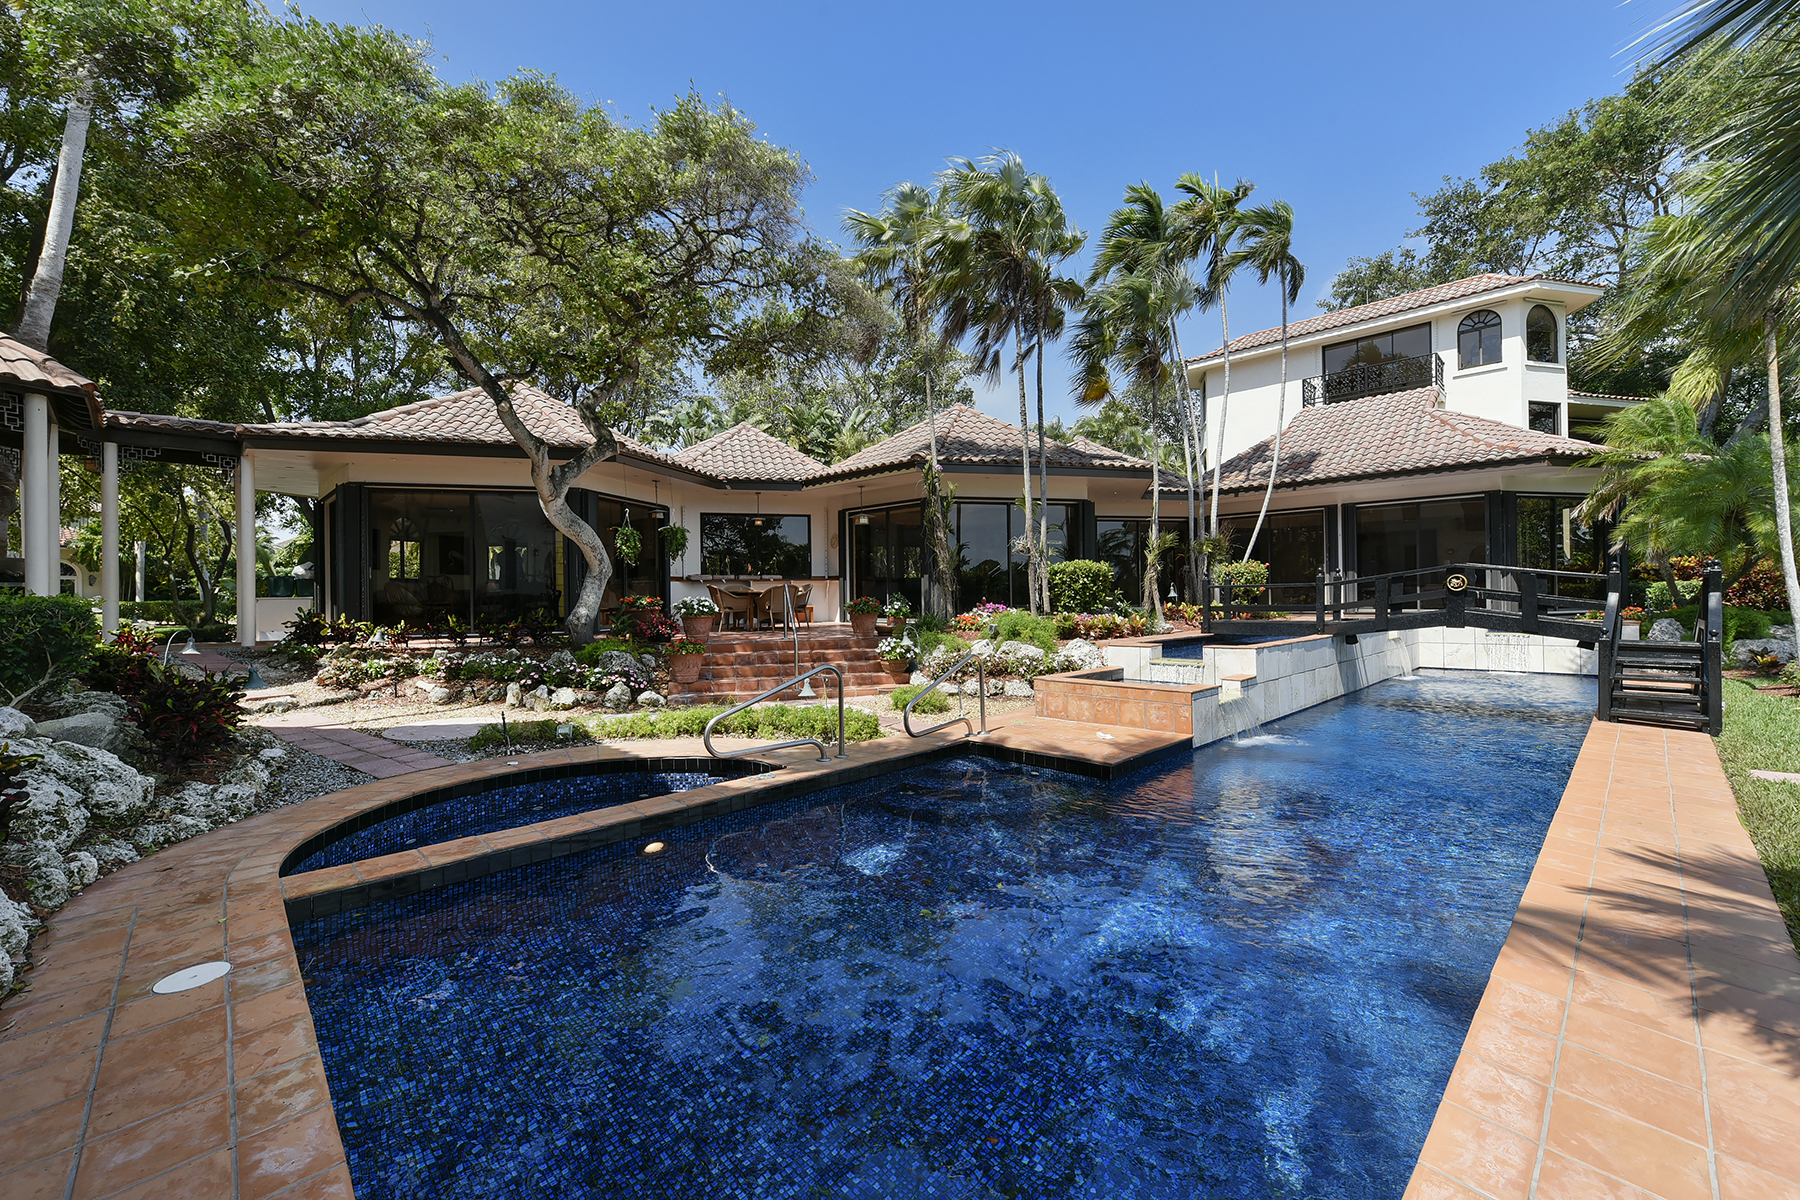 Vivienda unifamiliar por un Venta en Architecturally Stunning Waterfront Home at Ocean Reef 44 Cardinal Lane Ocean Reef Community, Key Largo, Florida, 33037 Estados Unidos